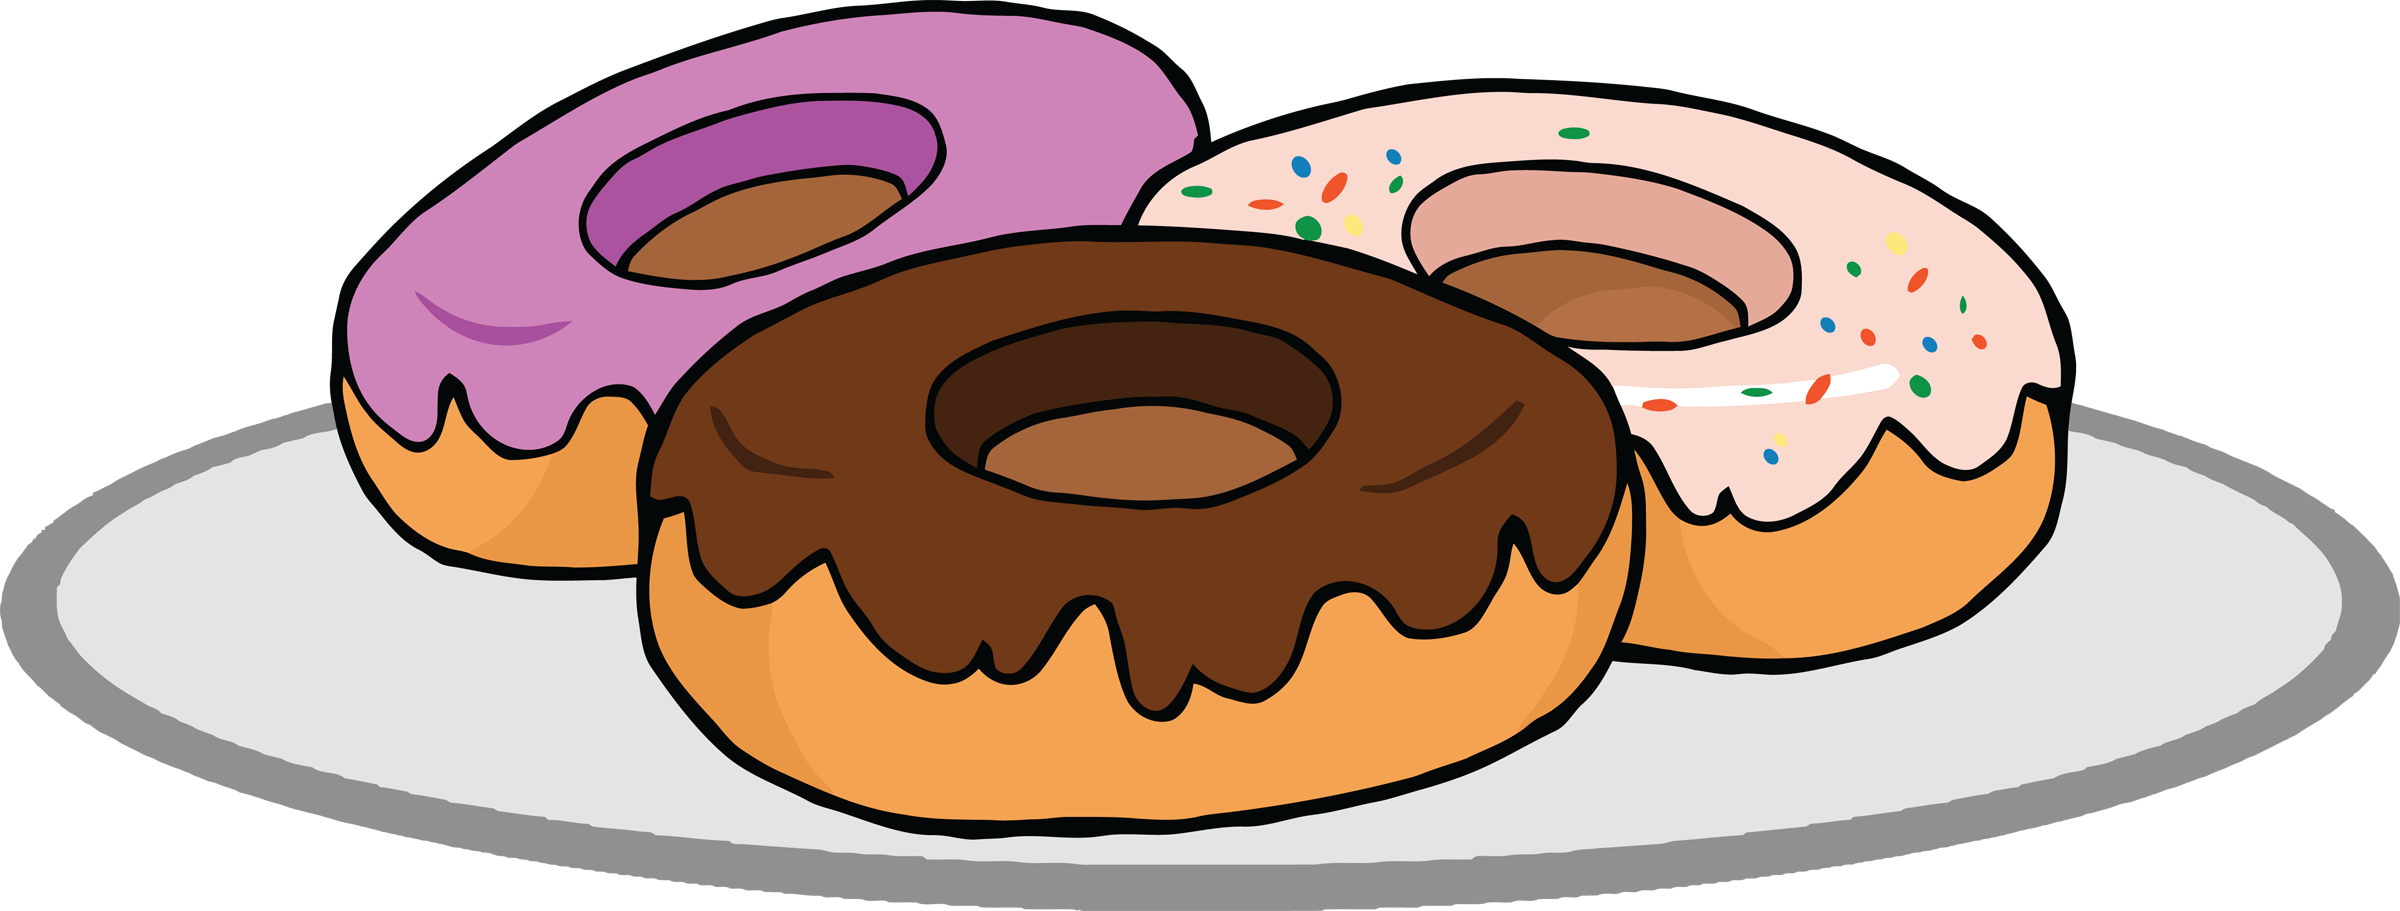 collection of donuts. 3 clipart donut